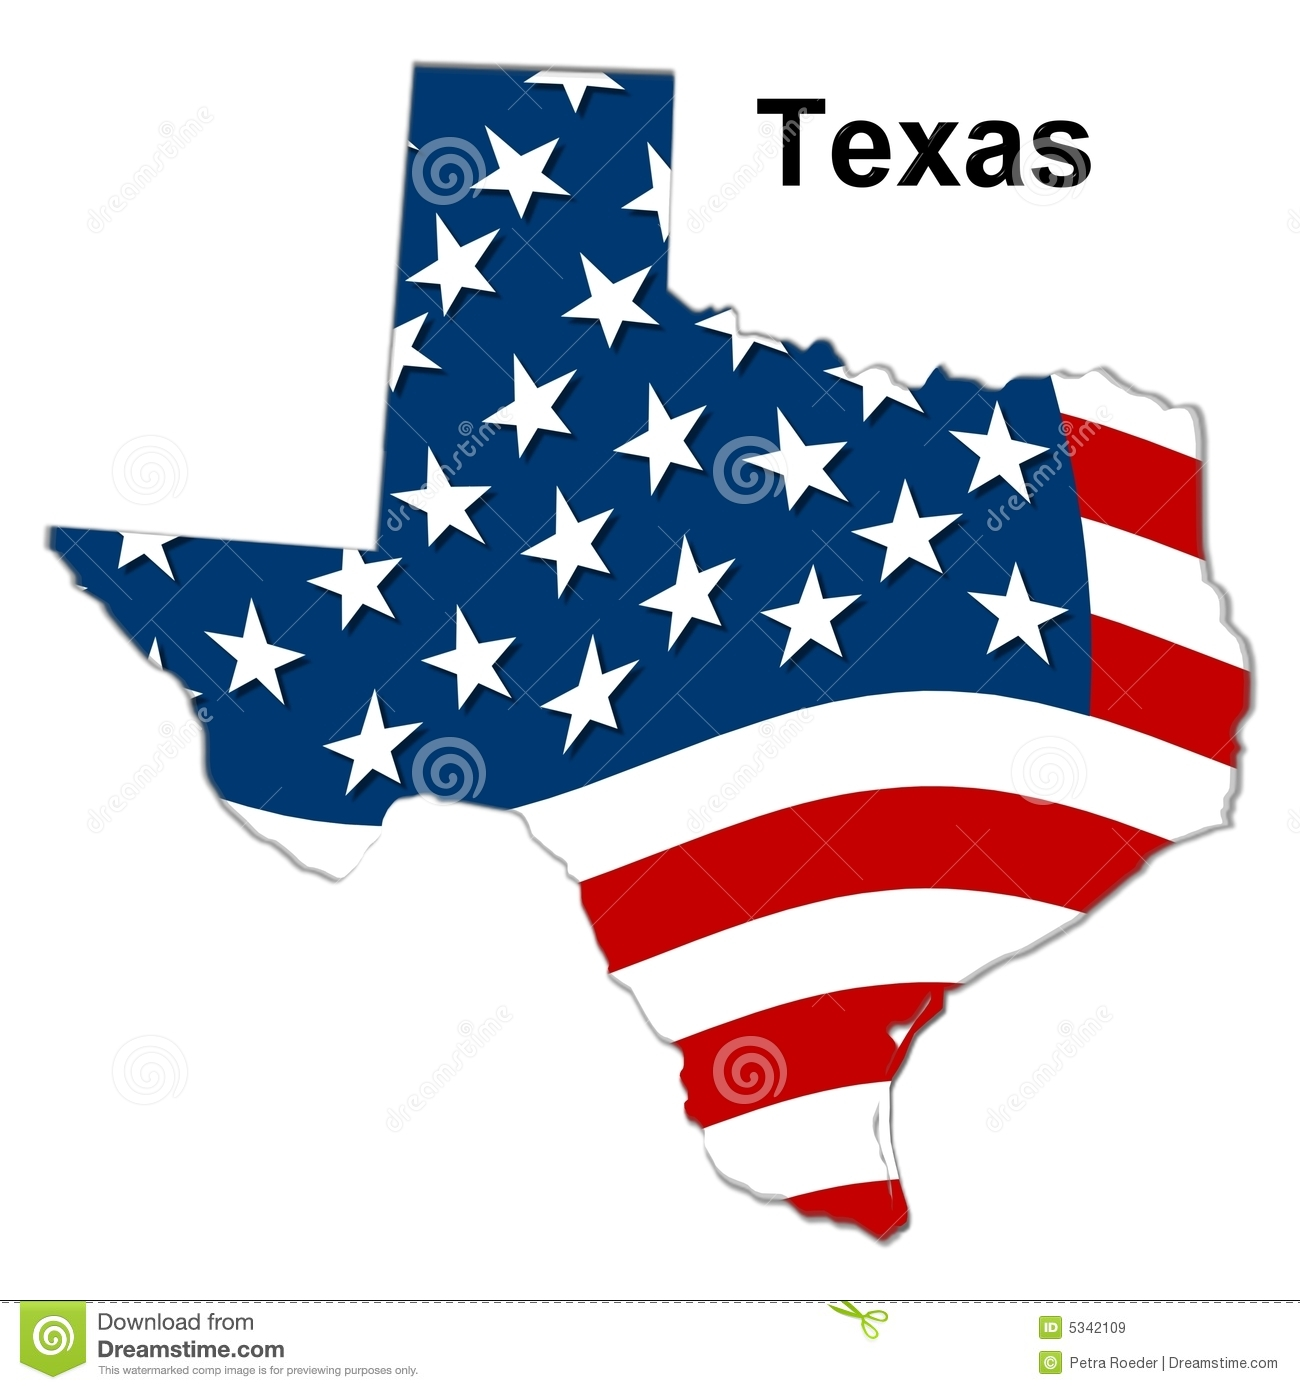 Map Of Texas Royalty Free Stock Images - Image: 5342109